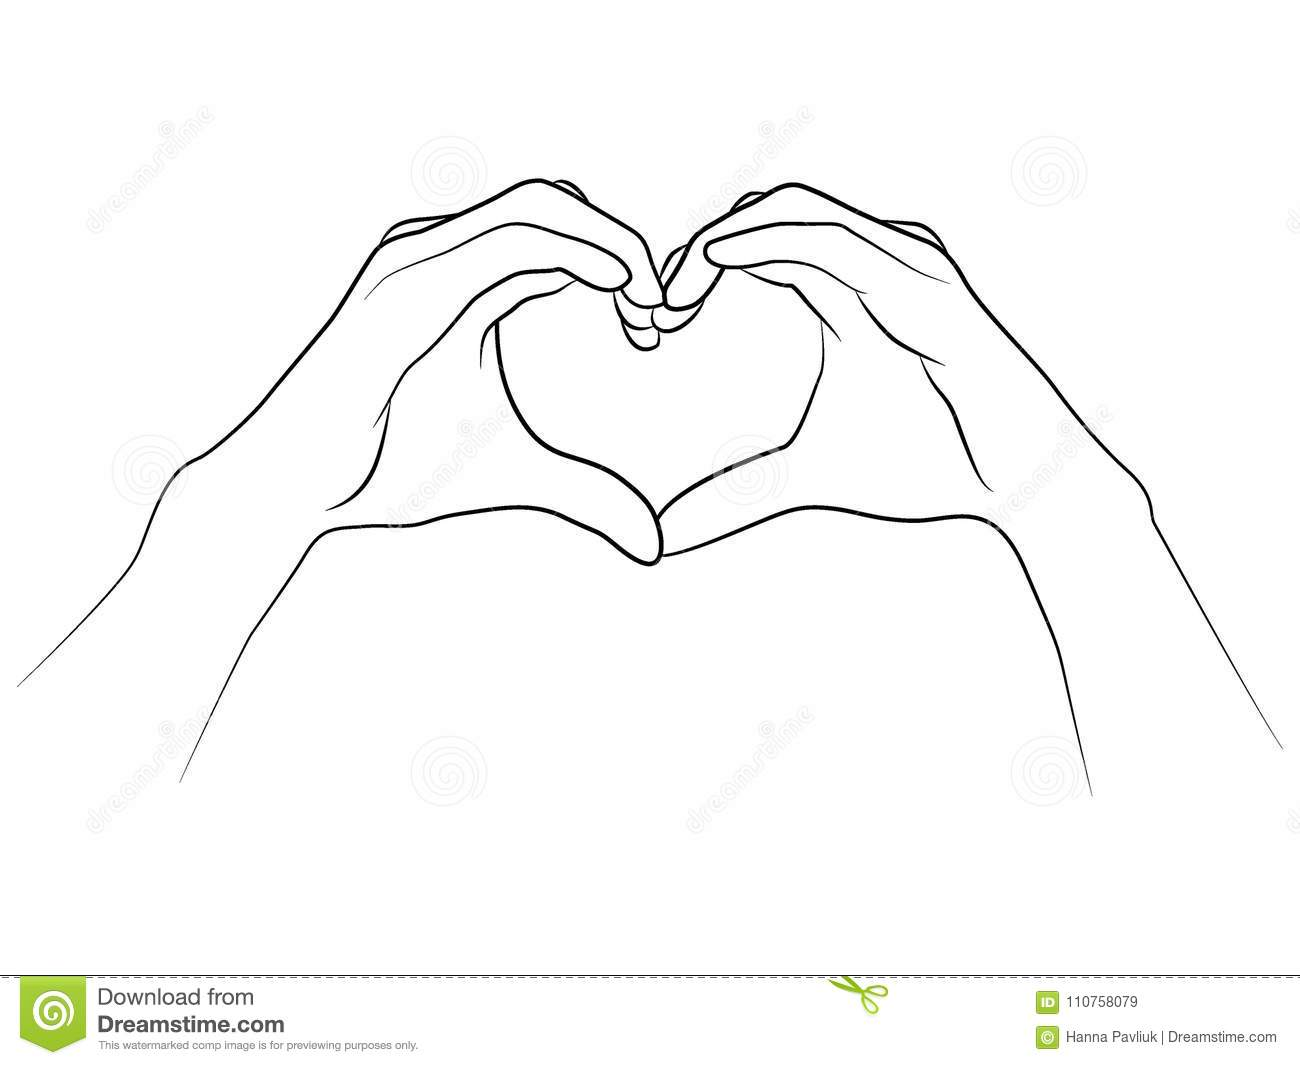 Hands Folded Together In The Shape Of A Heart Stock Vector